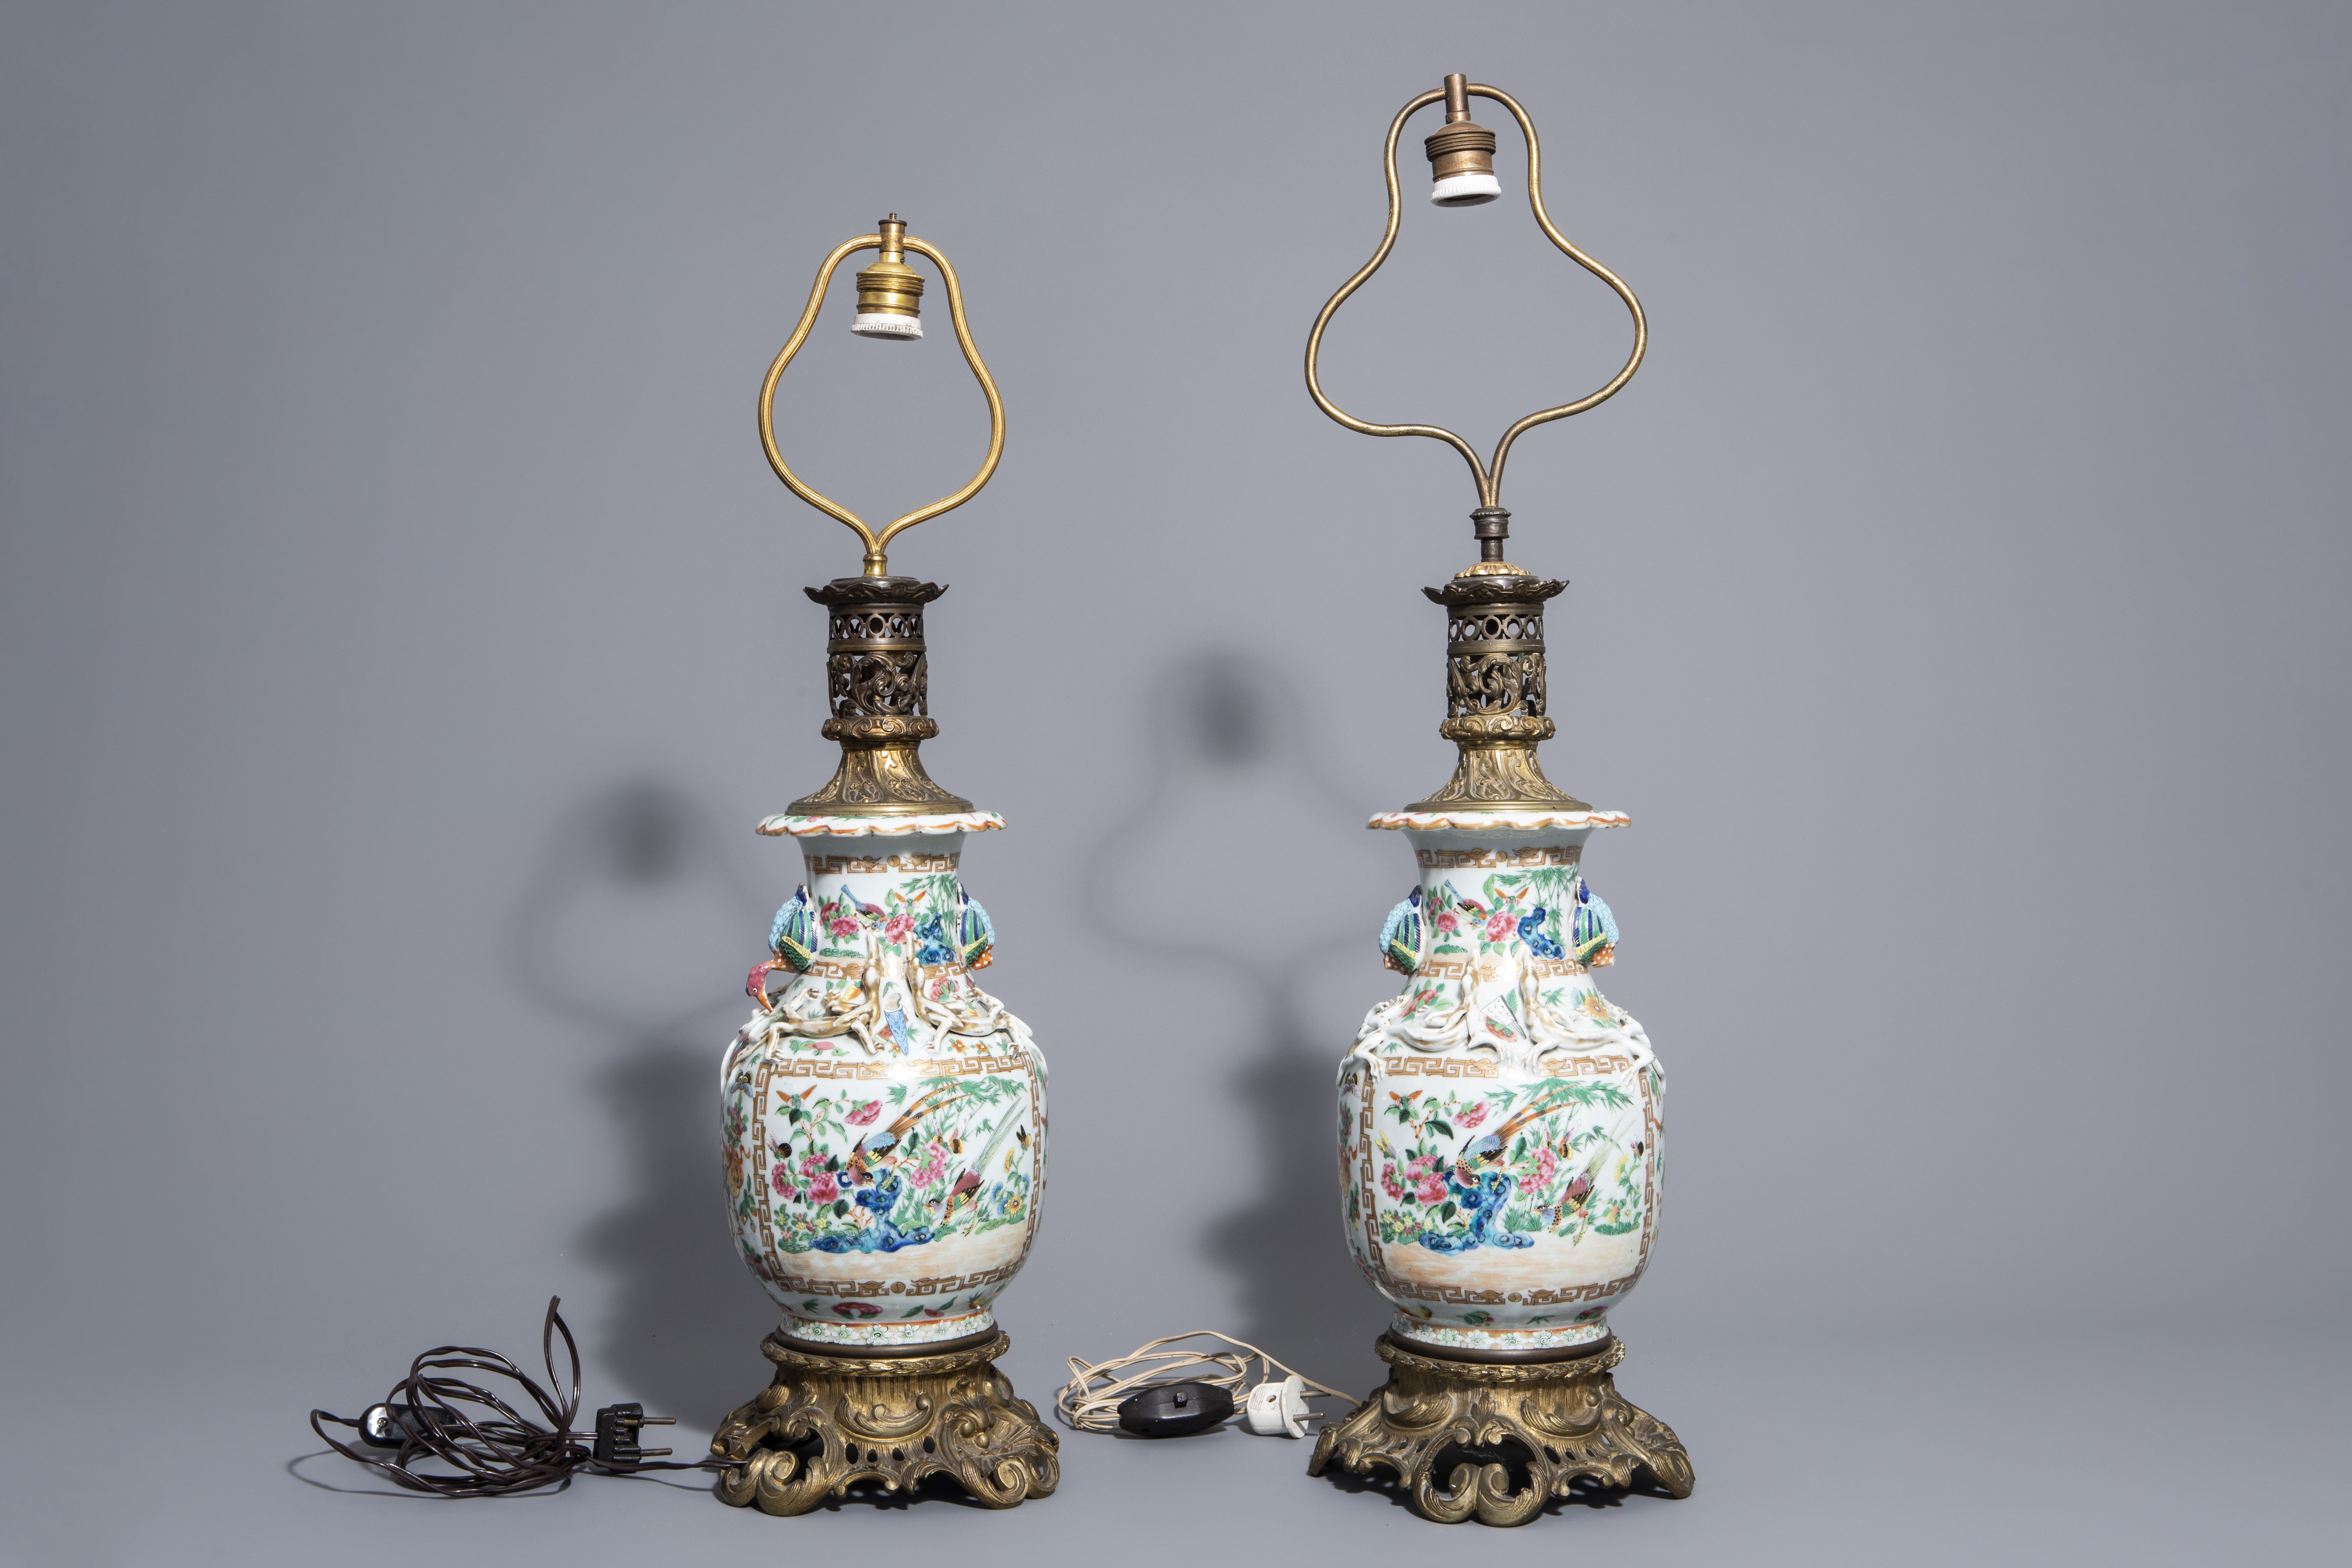 A pair of Chinese Canton famille rose vases mounted as lamps and a famille verte jar, 19th C. - Image 2 of 13